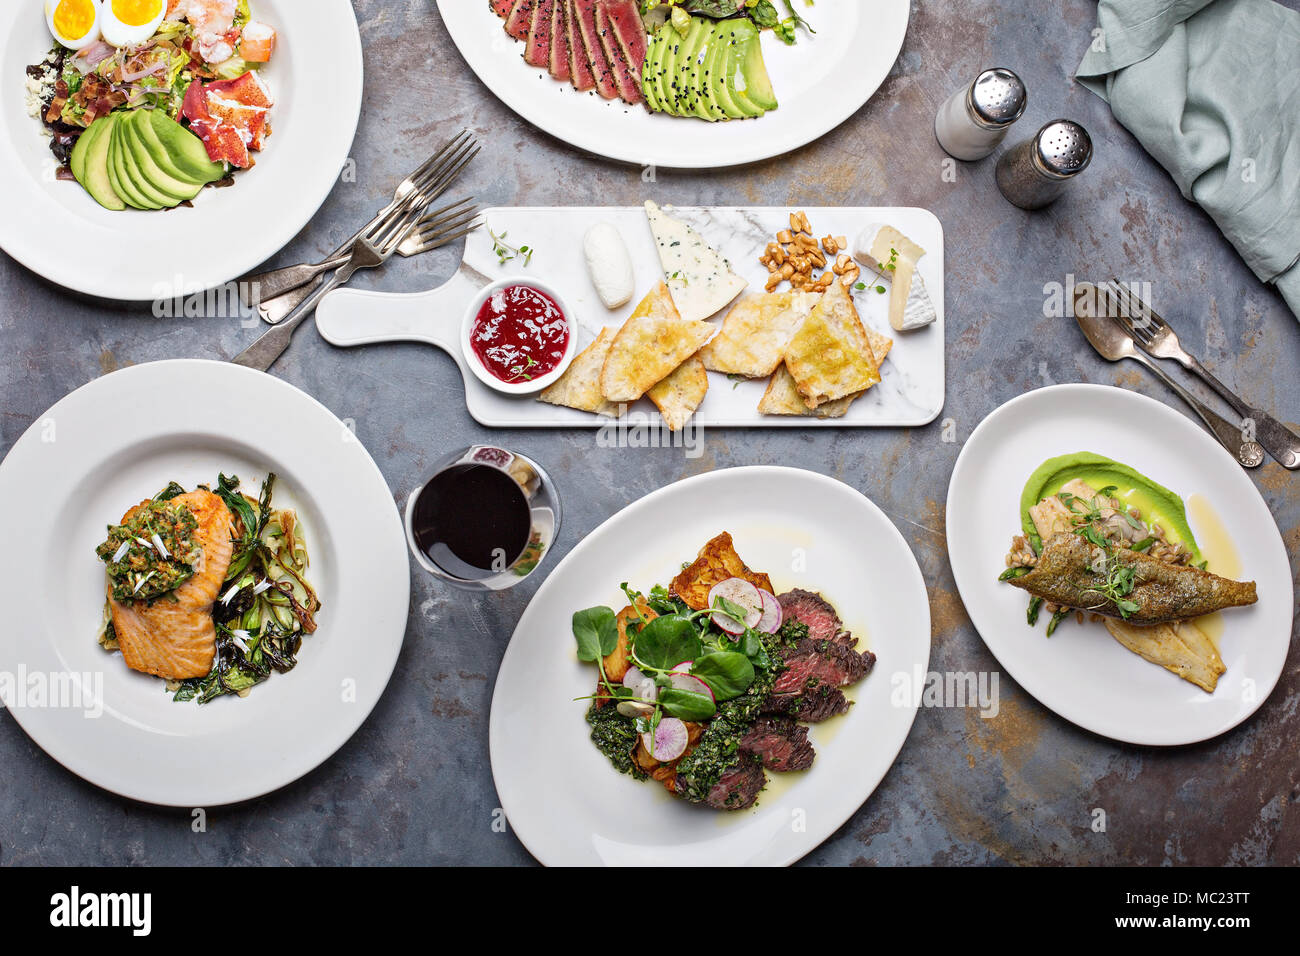 Big dinner table overhead view with steak and fish - Stock Image